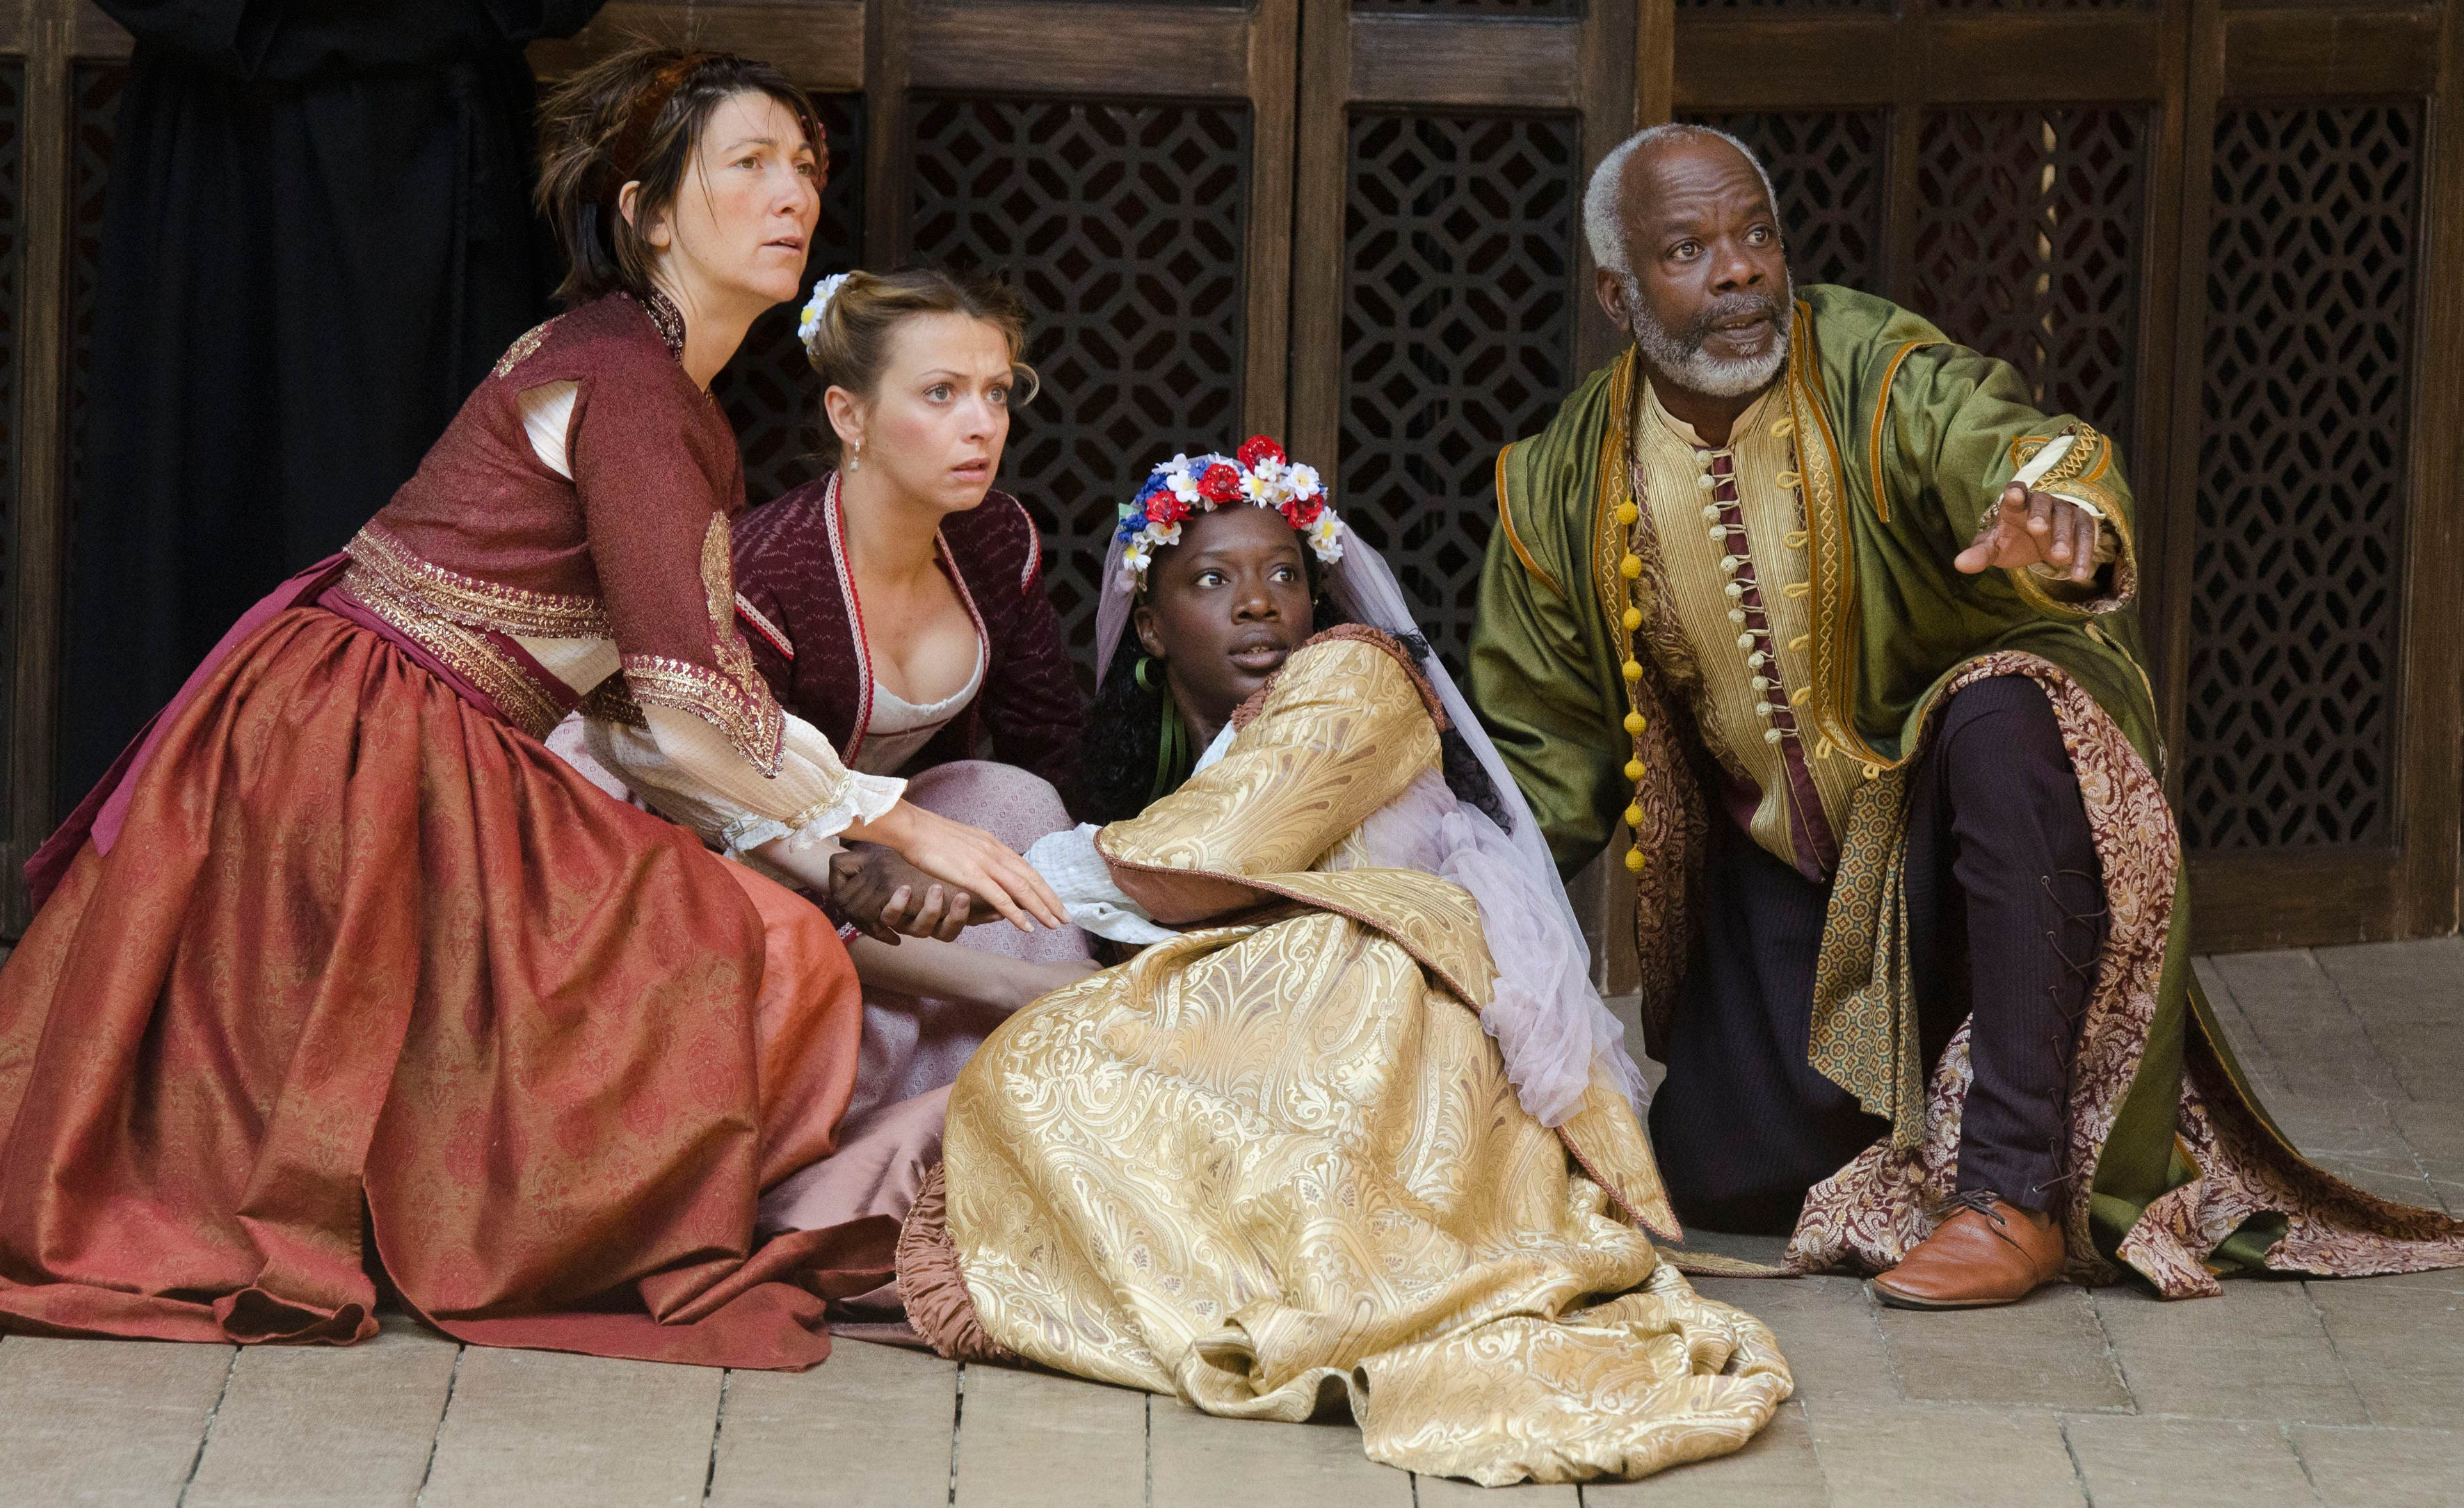 Photograph of Much Ado About Nothing performed at Shakespeare's Globe, 2011